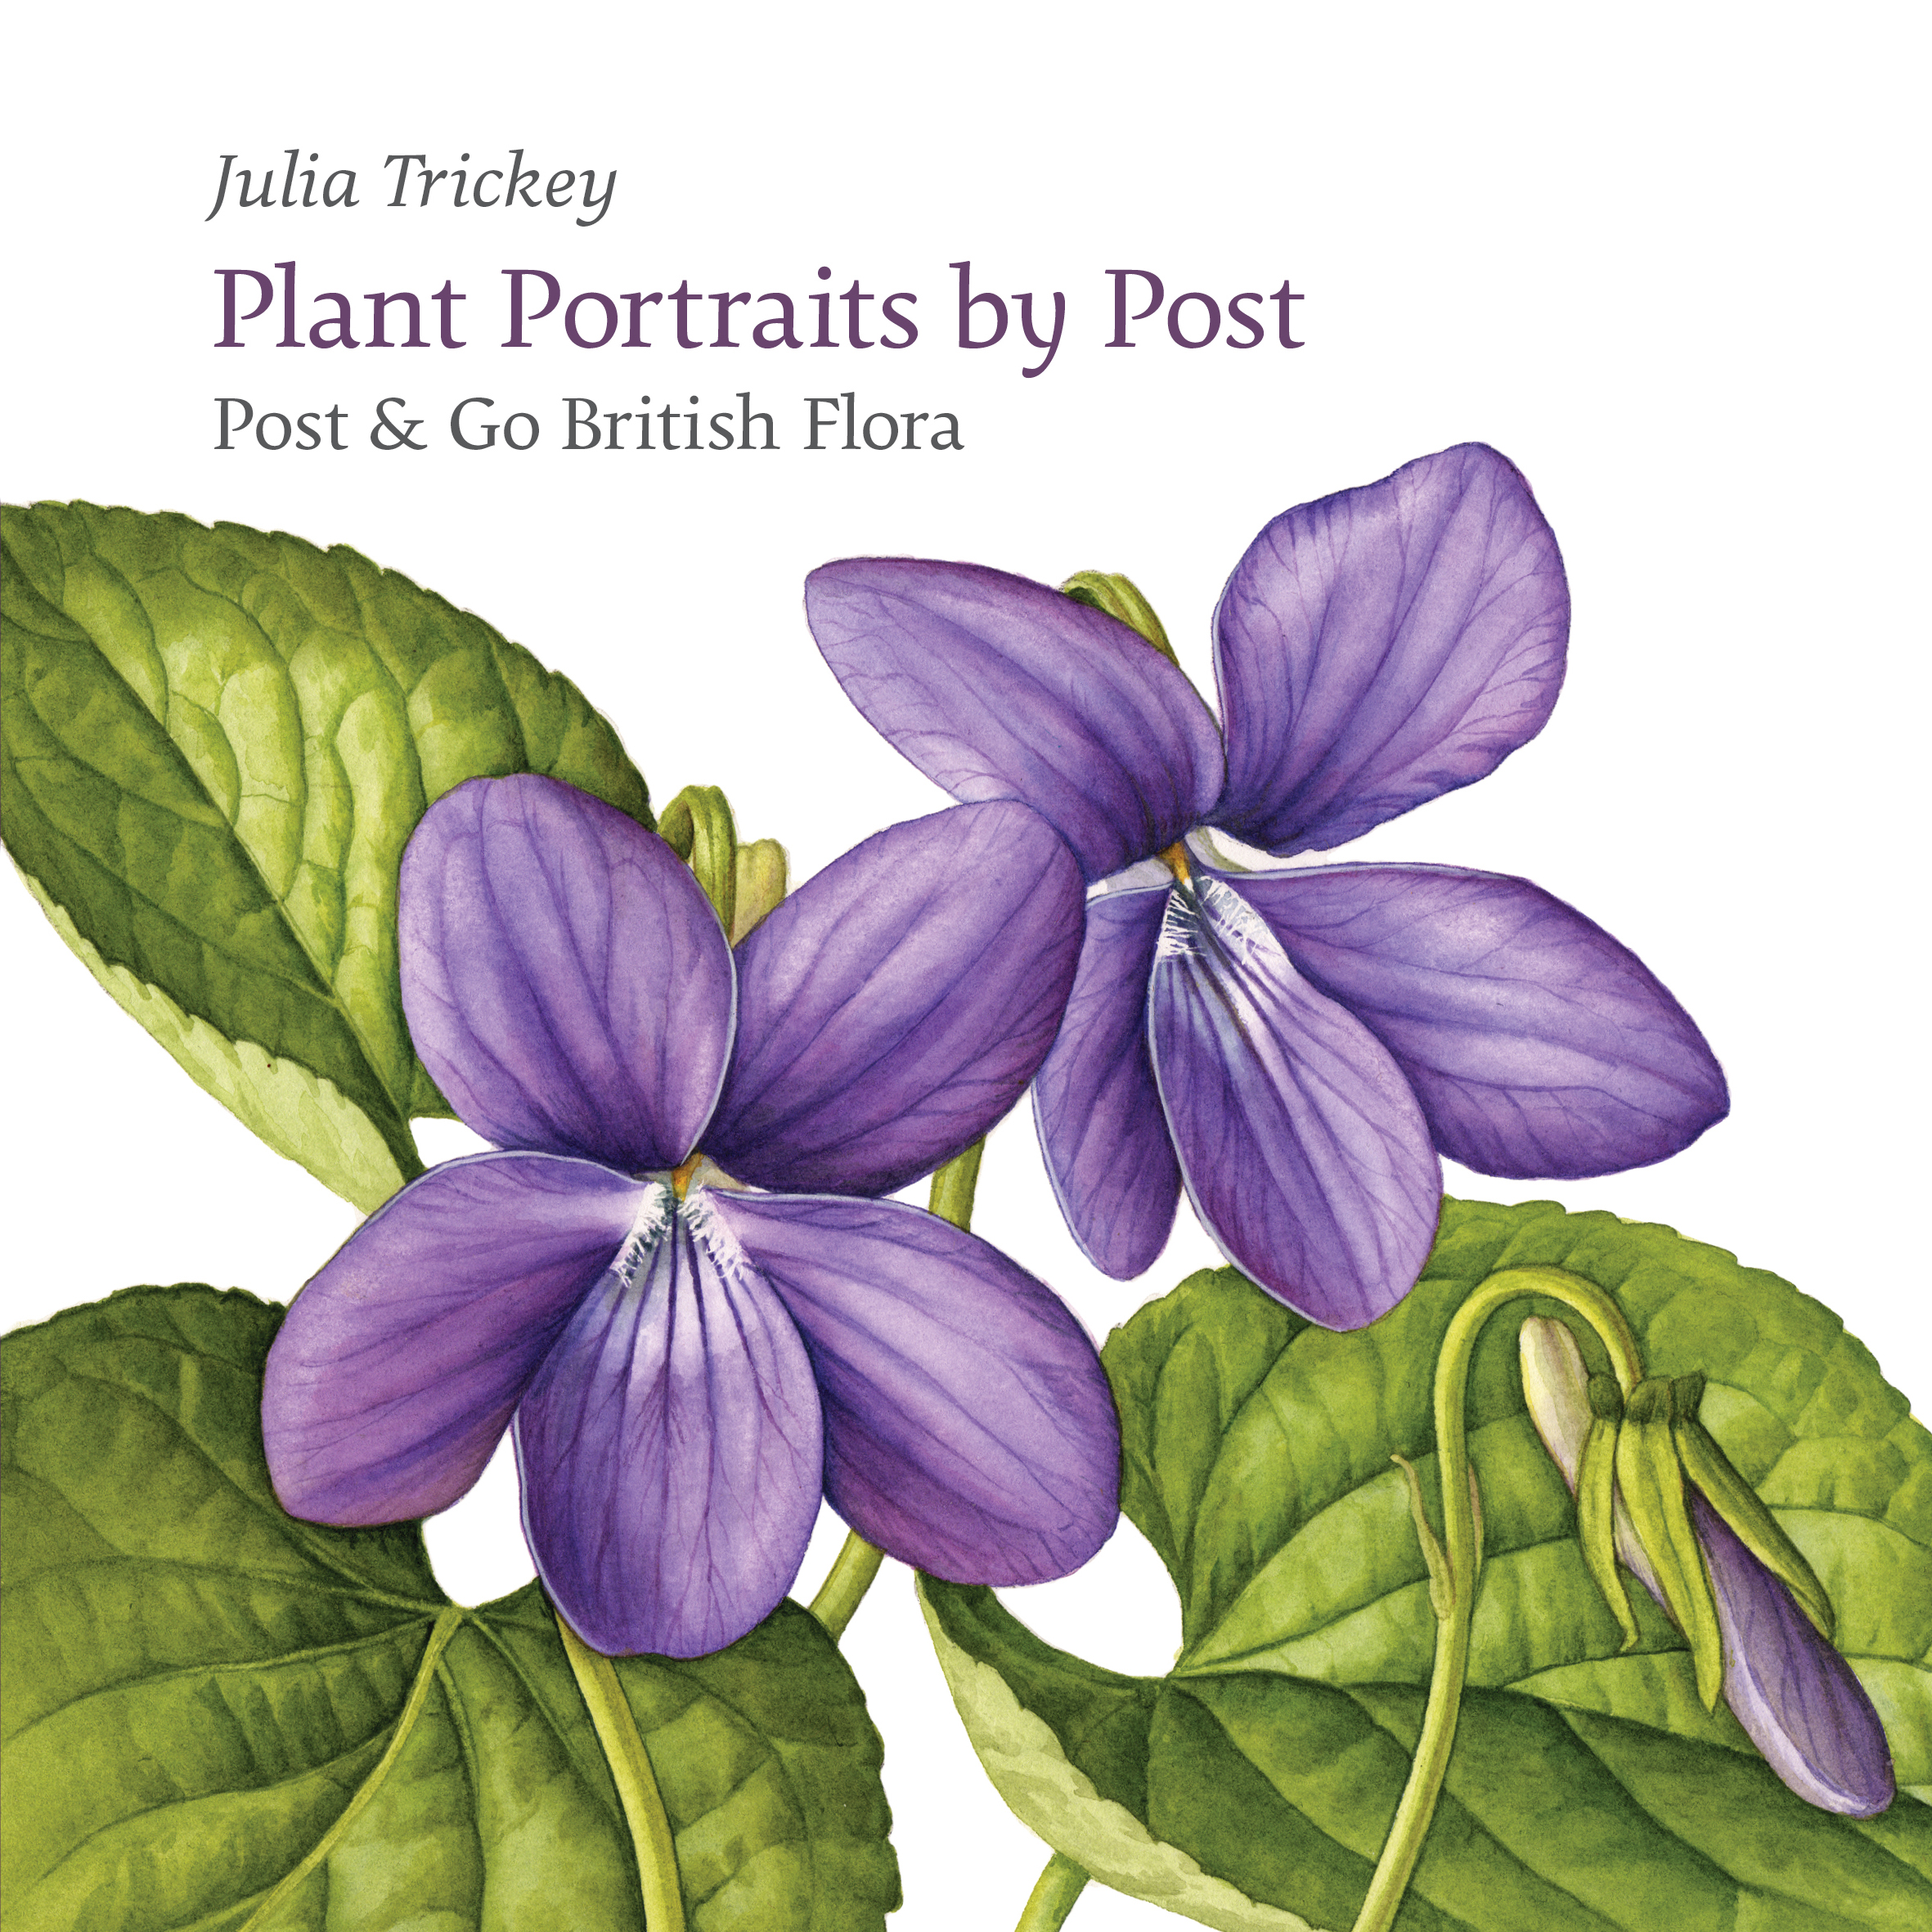 Plant Portraits by Post by Julia Trickey